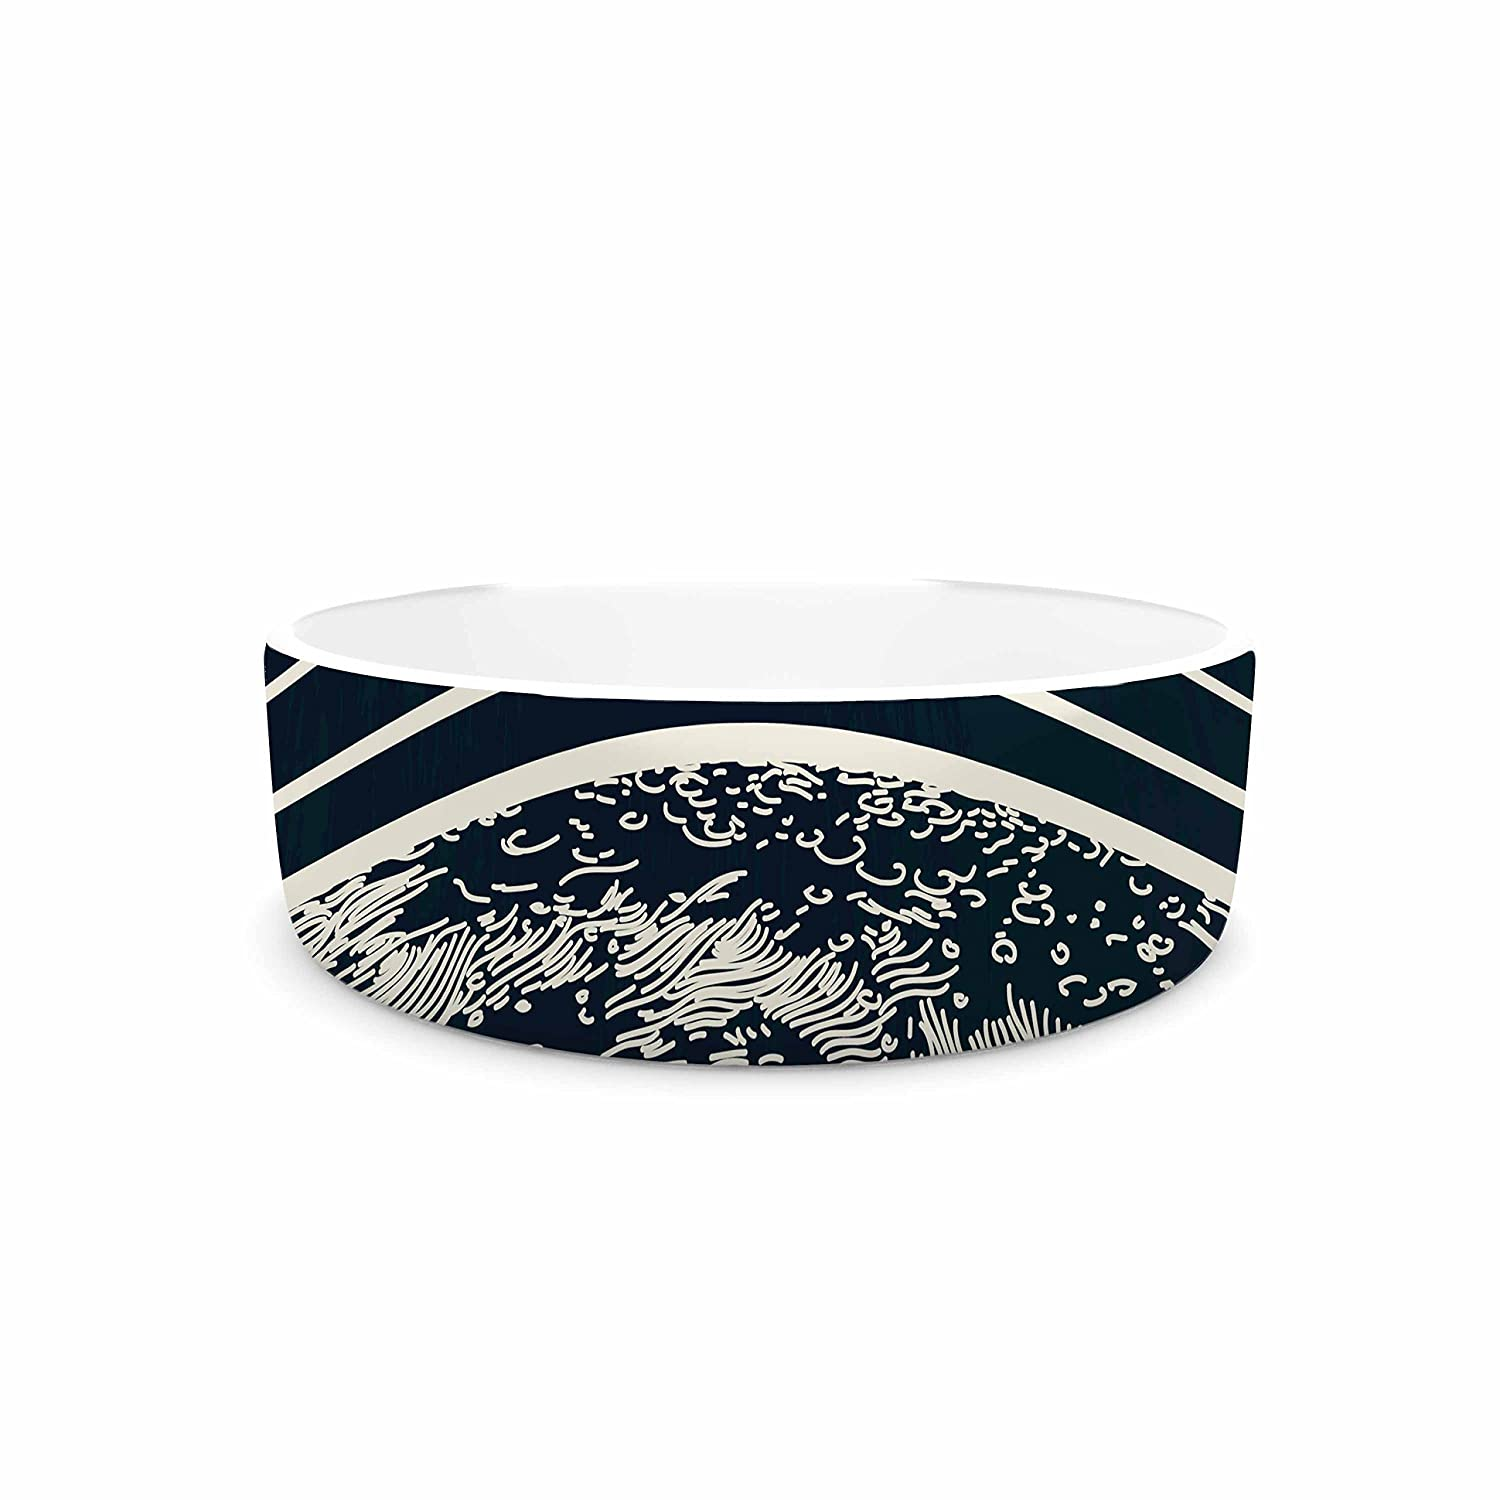 KESS InHouse Sam Posnick We are without Limits  bluee Typography Pet Bowl, 7